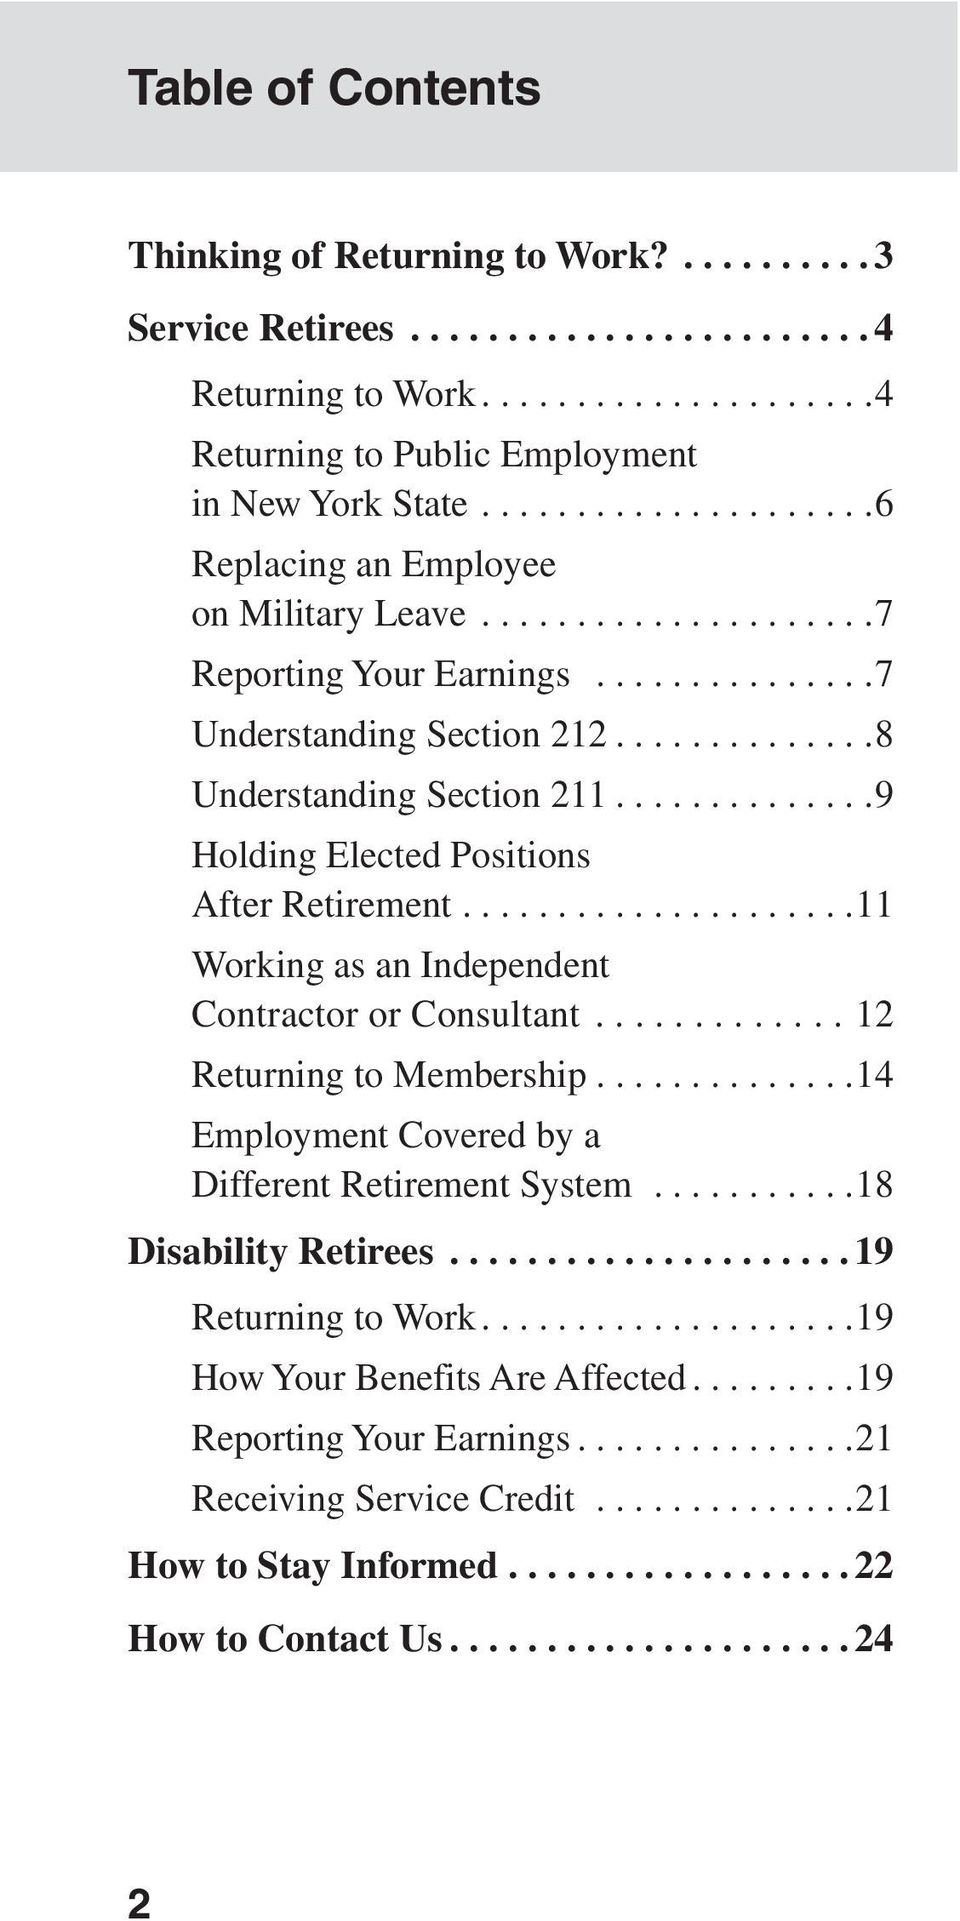 ..9 Holding Elected Positions After Retirement...11 Working as an Independent Contractor or Consultant...12 Returning to Membership.